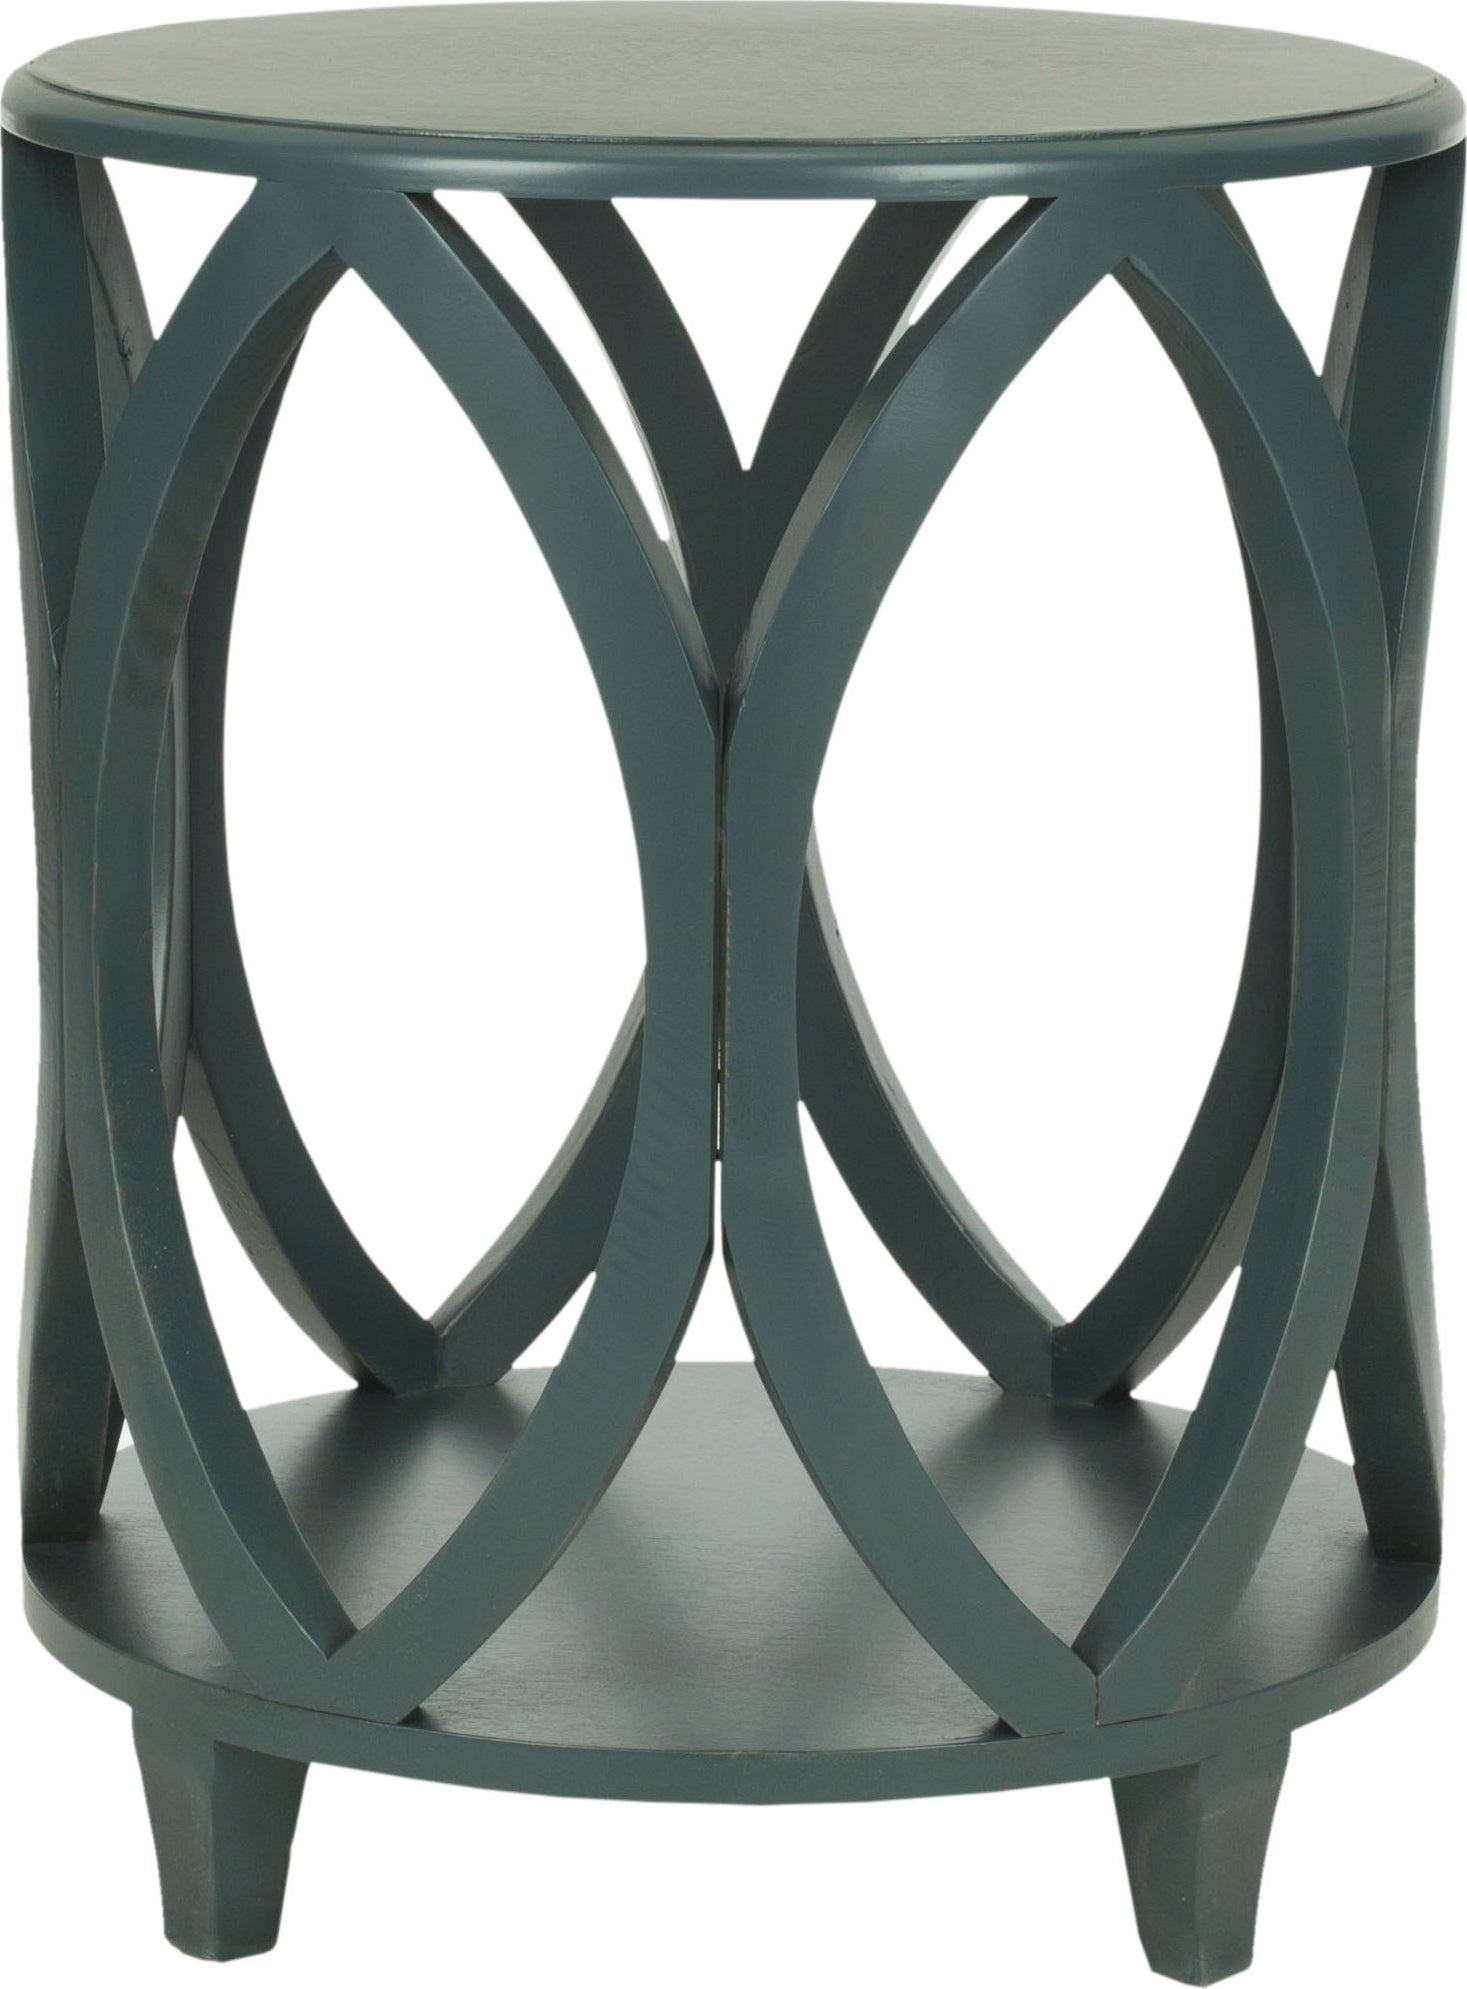 Safavieh Janika Round Accent Table Steel Teal Furniture main image